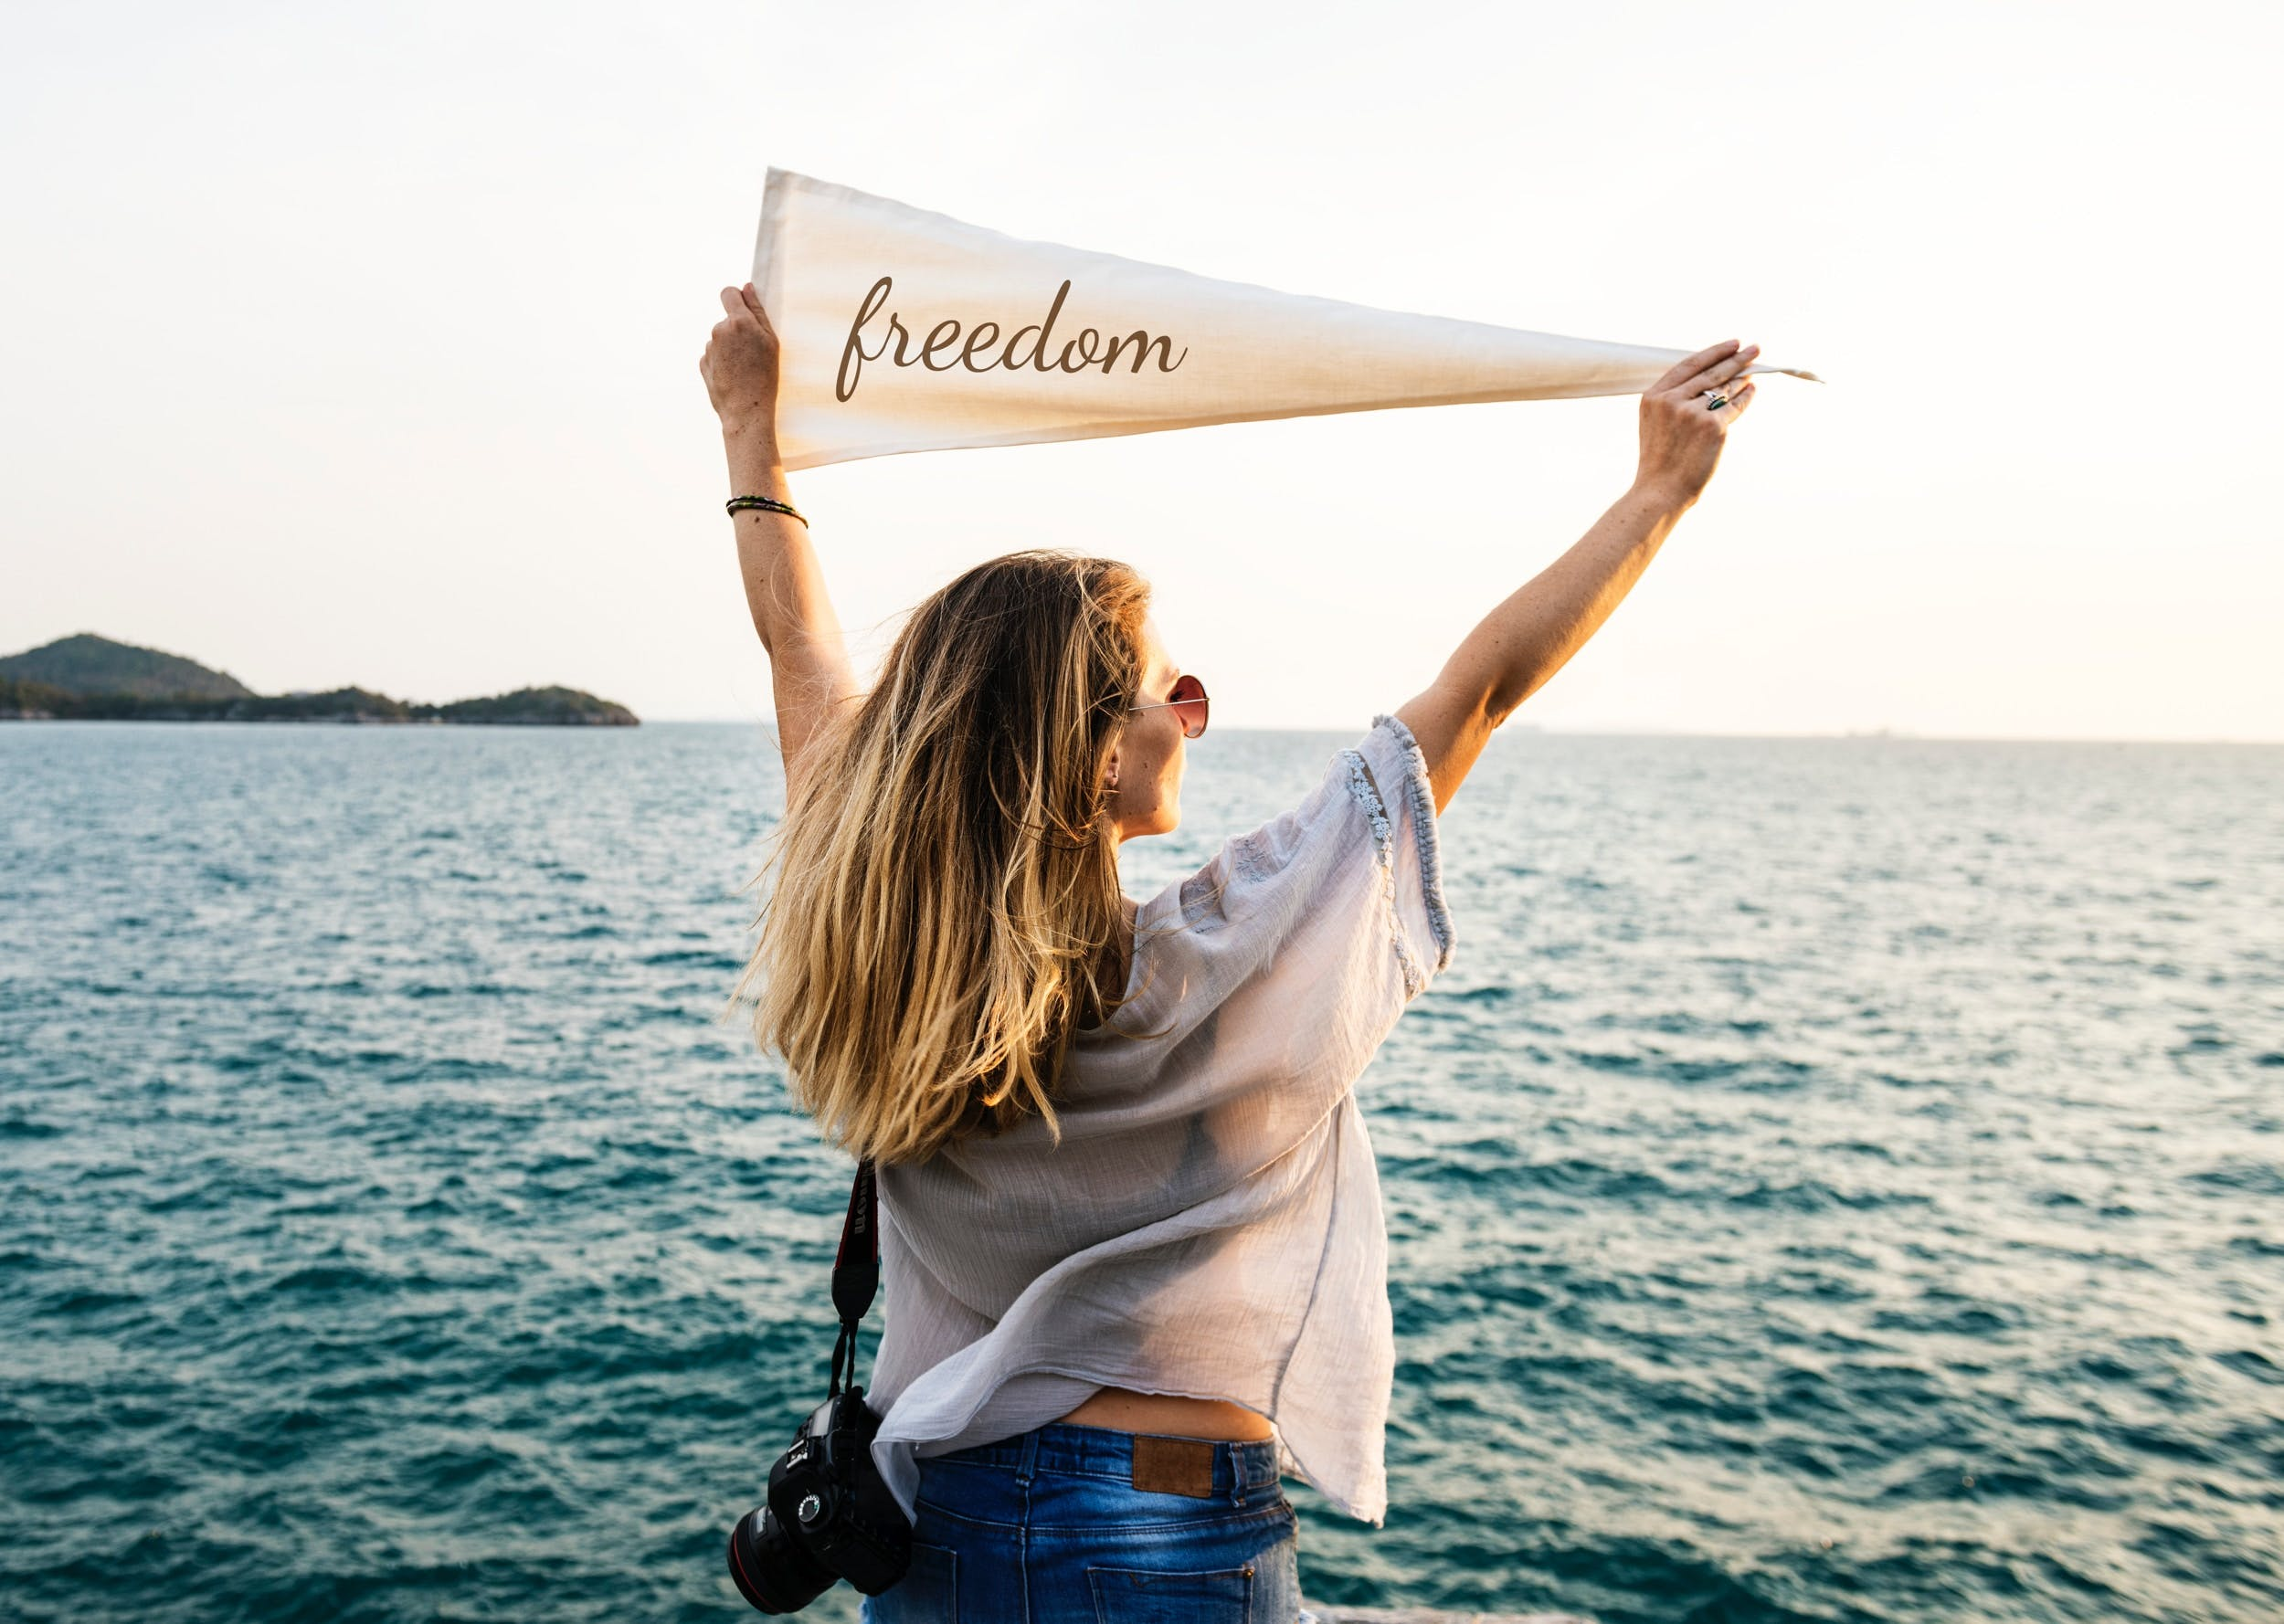 I woman with her back to us looking out at the ocean holding a banner saying freedom